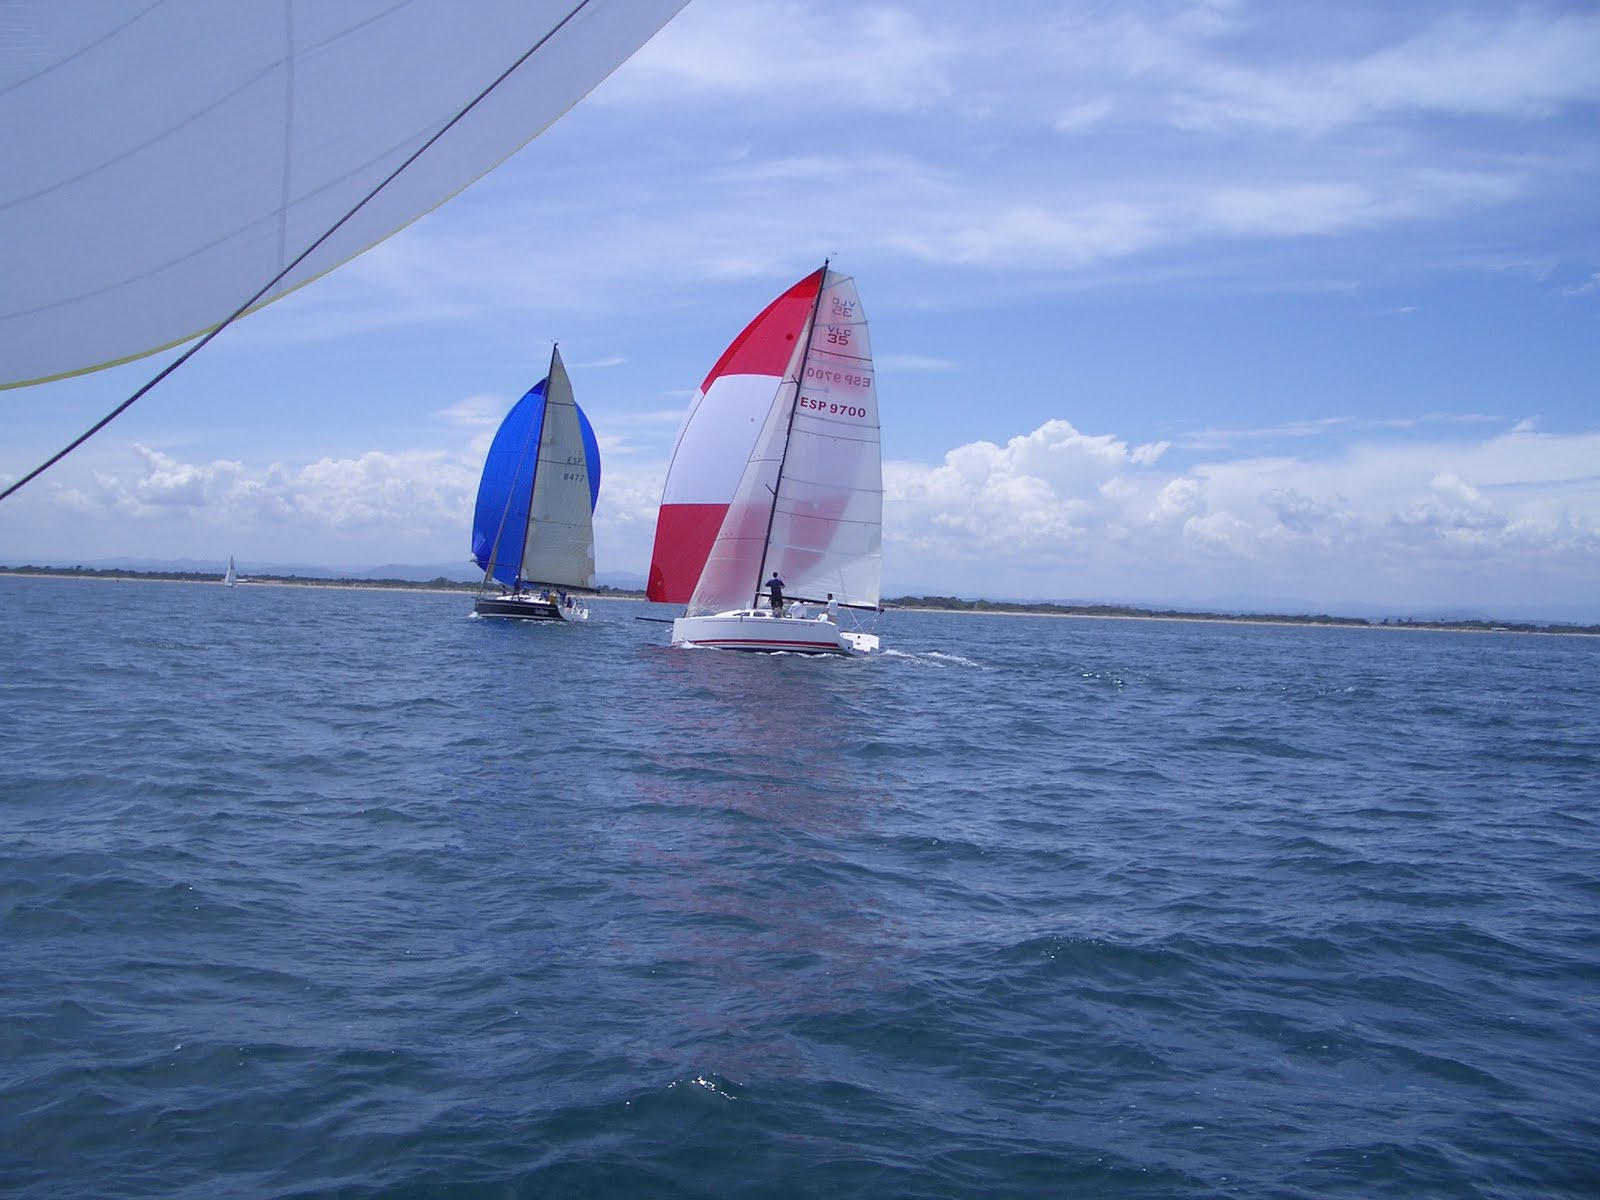 VLC 35 (foreground) going past a Dehler 44 downwind.